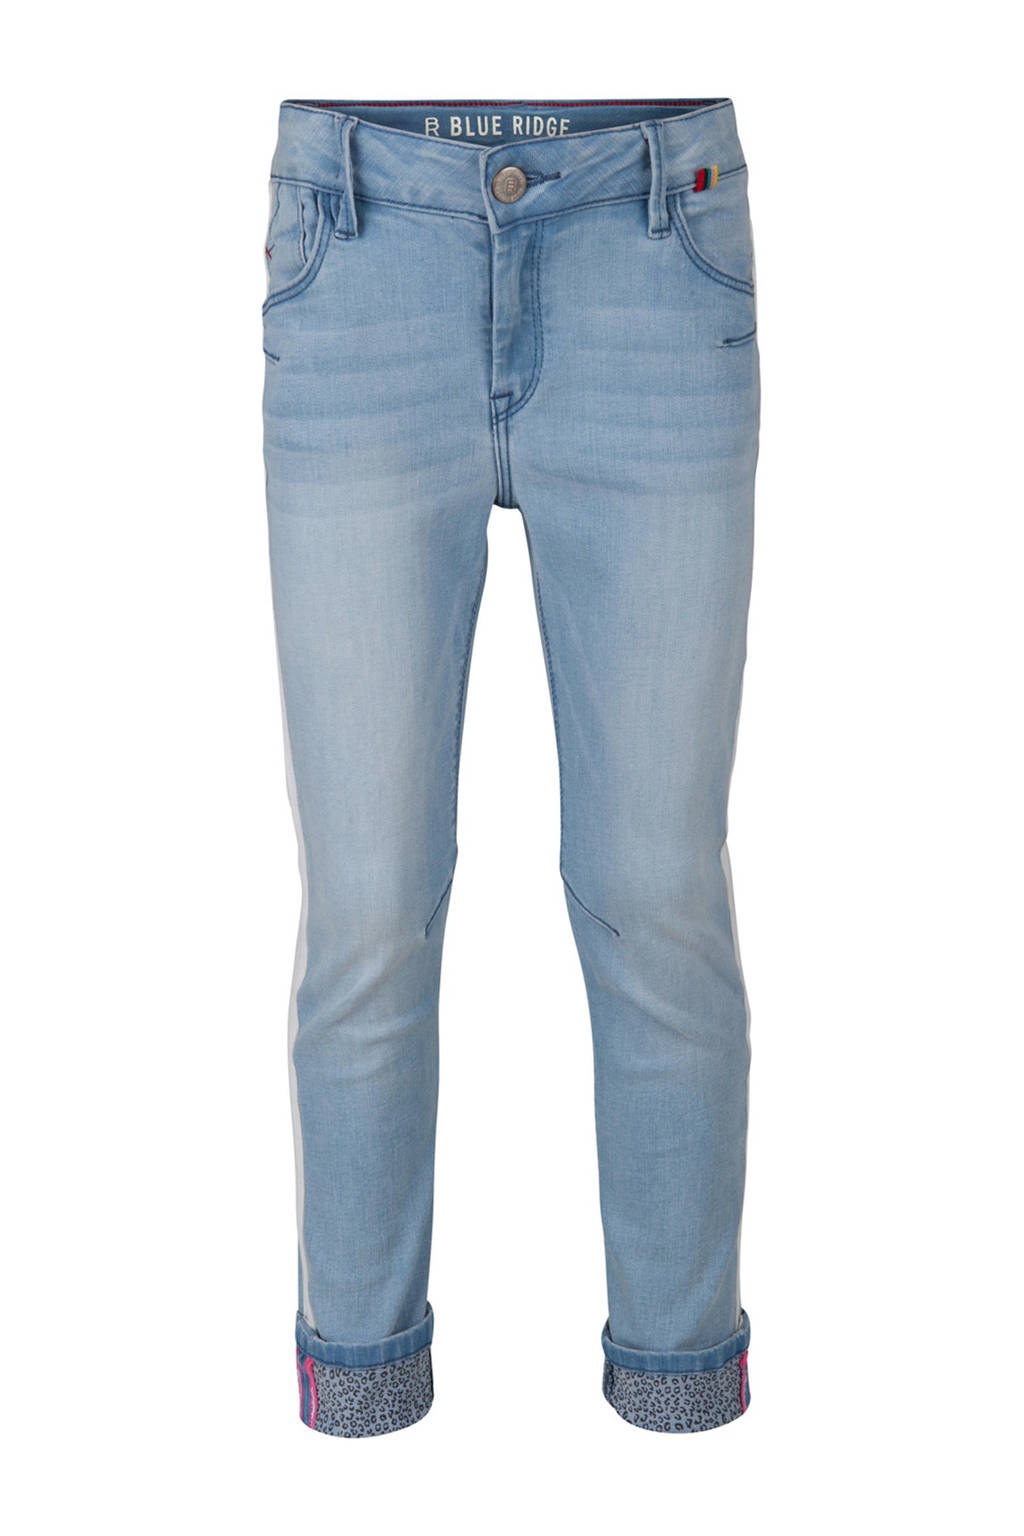 WE Fashion Blue Ridge boyfriend jeans, Light denim